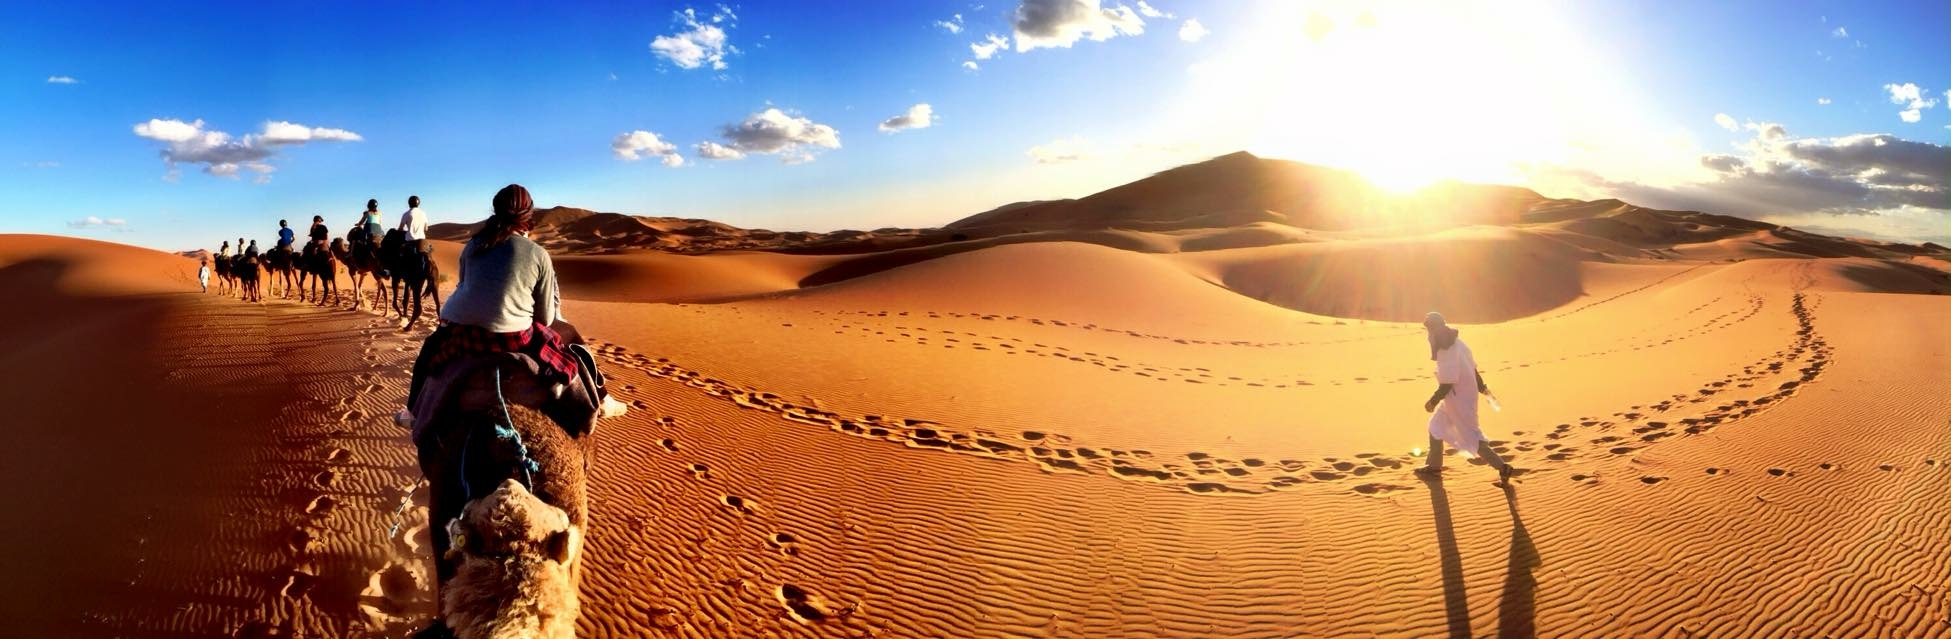 A Pinch of This - Morocco Travels - Sahara Desert Pano